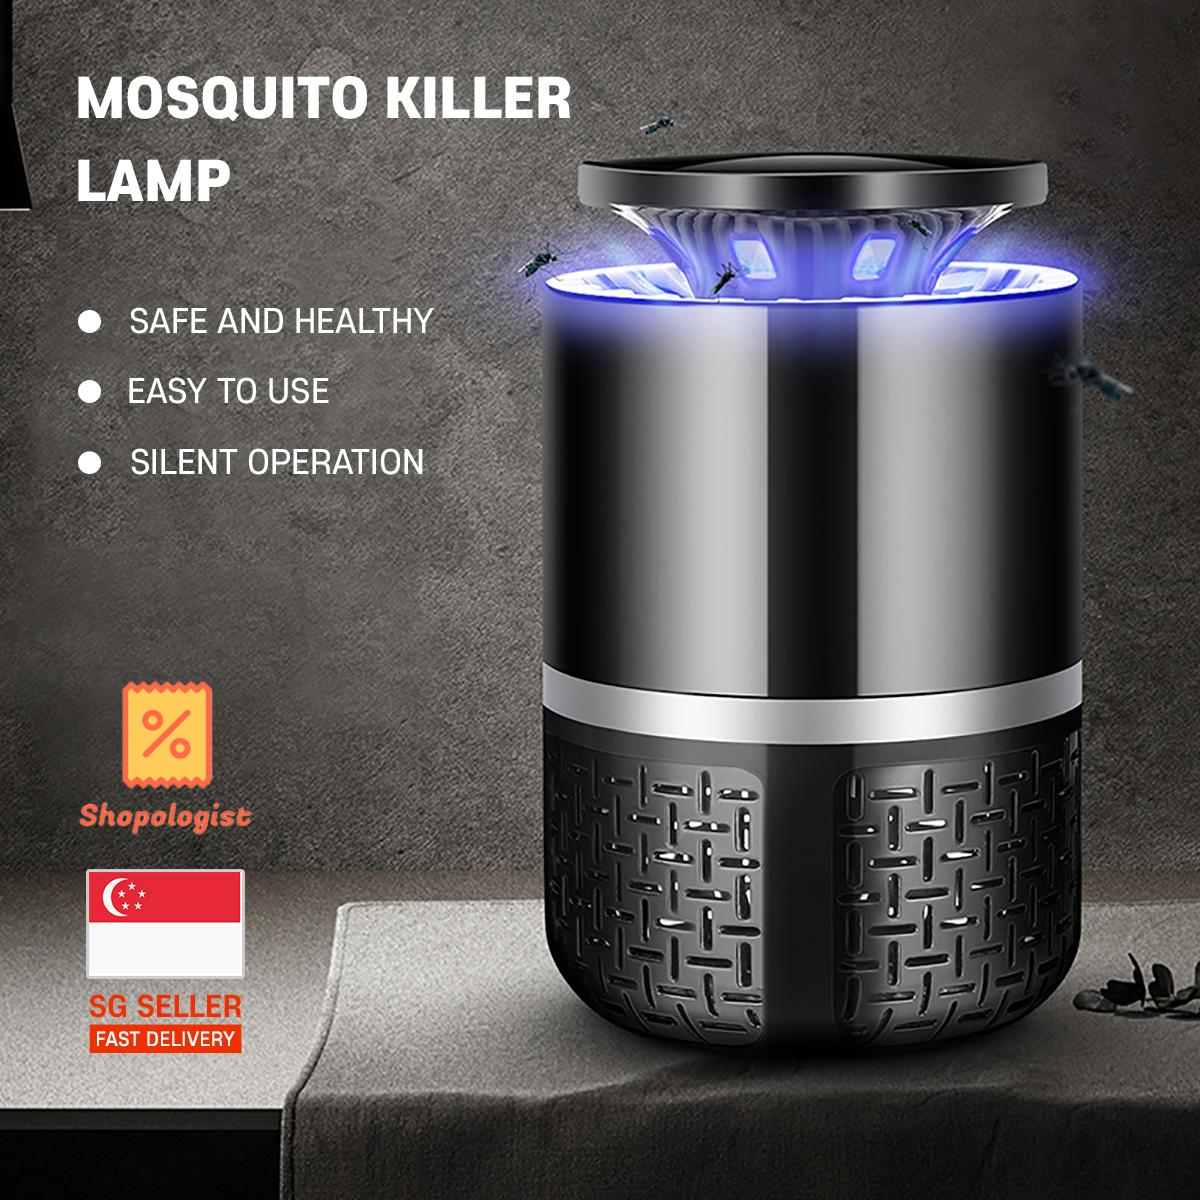 Mosquito Killer Lamp USB Powered with 2 Pin Plug Adaptor Photocatalysis Technology Safe and Healthy Easy to Clean design